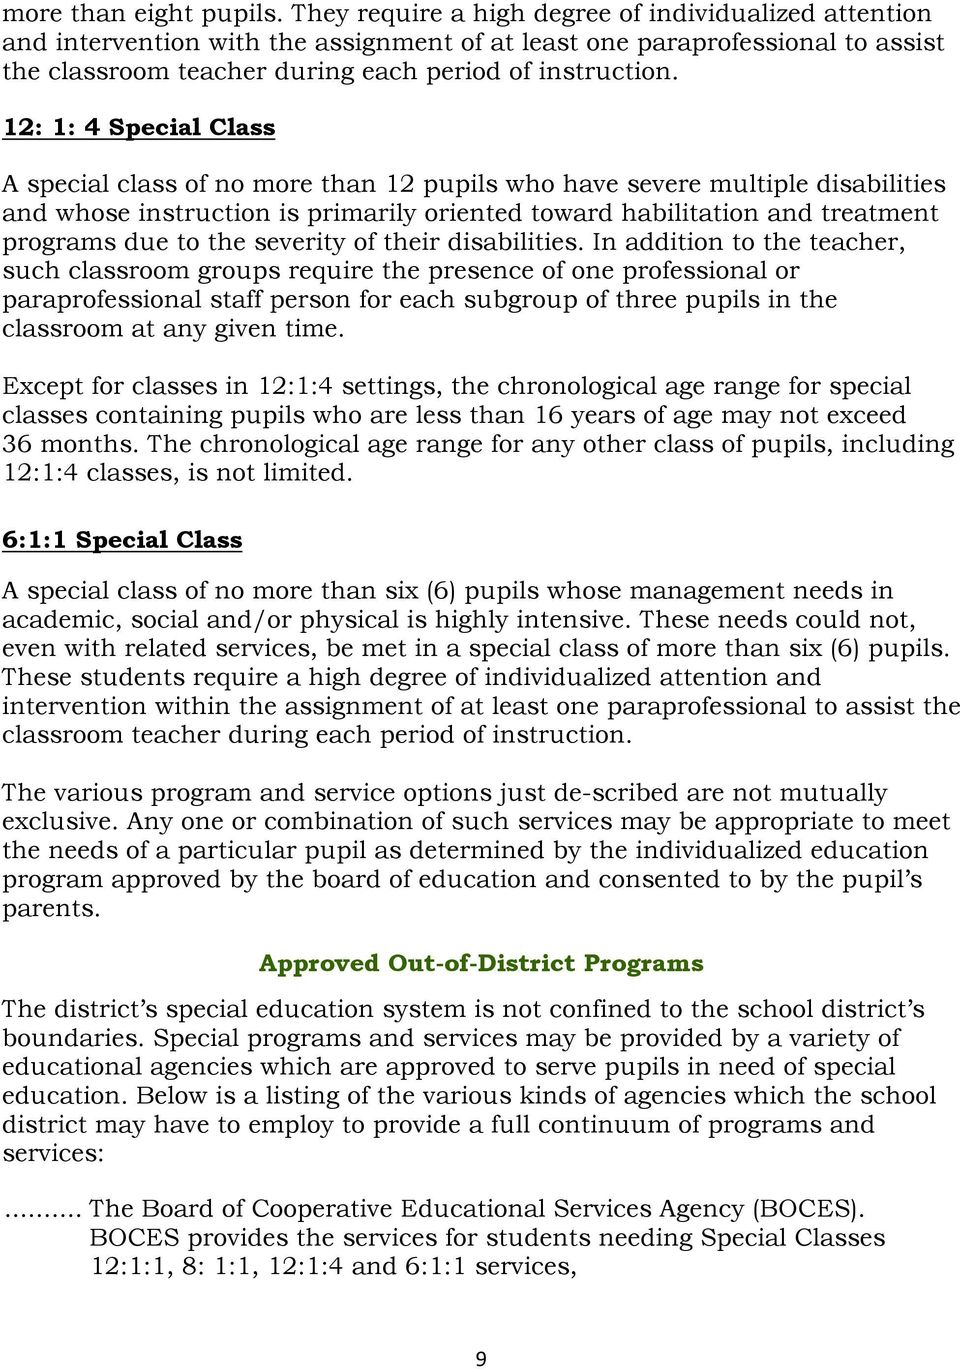 12: 1: 4 Special Class A special class of no more than 12 pupils who have severe multiple disabilities and whose instruction is primarily oriented toward habilitation and treatment programs due to